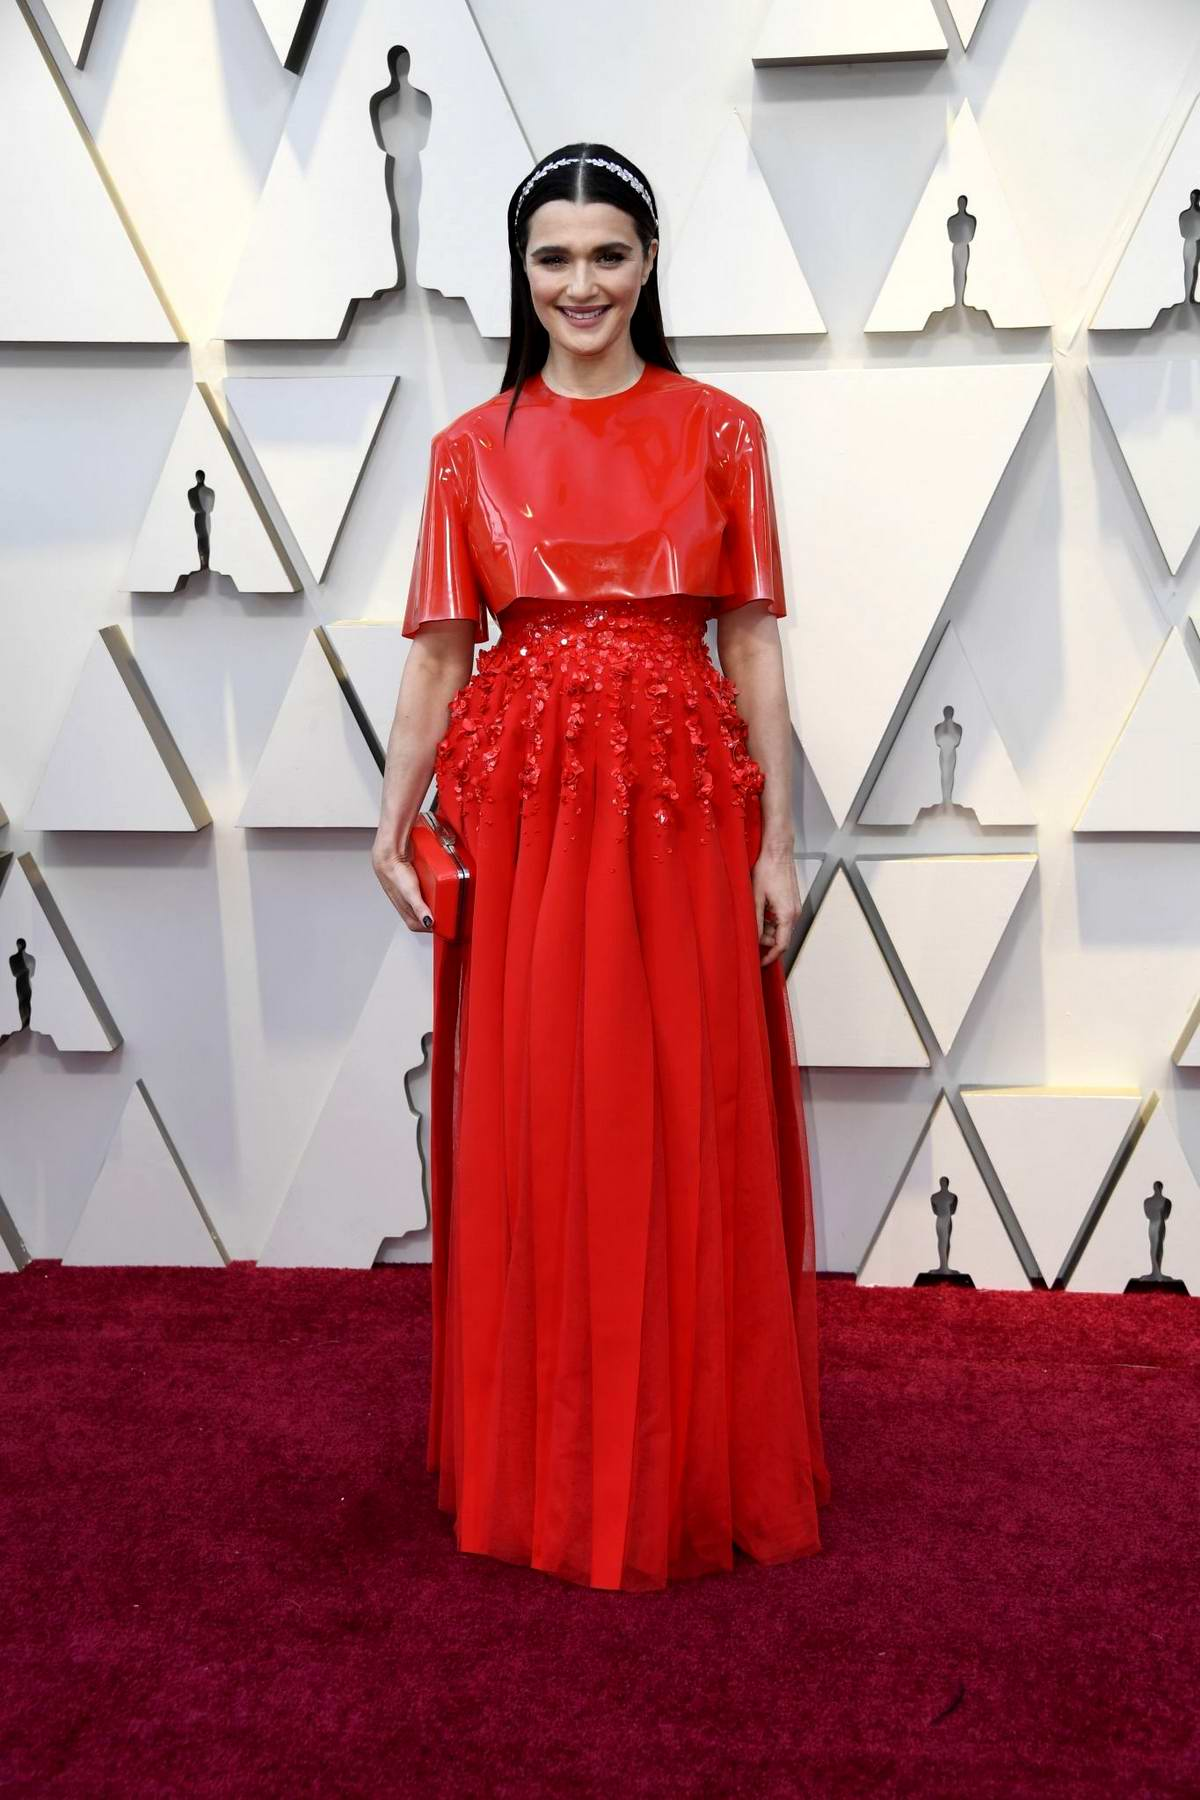 Rachel Weisz attends the 91st Annual Academy Awards (Oscars 2019) held at the Dolby Theatre in Hollywood, California